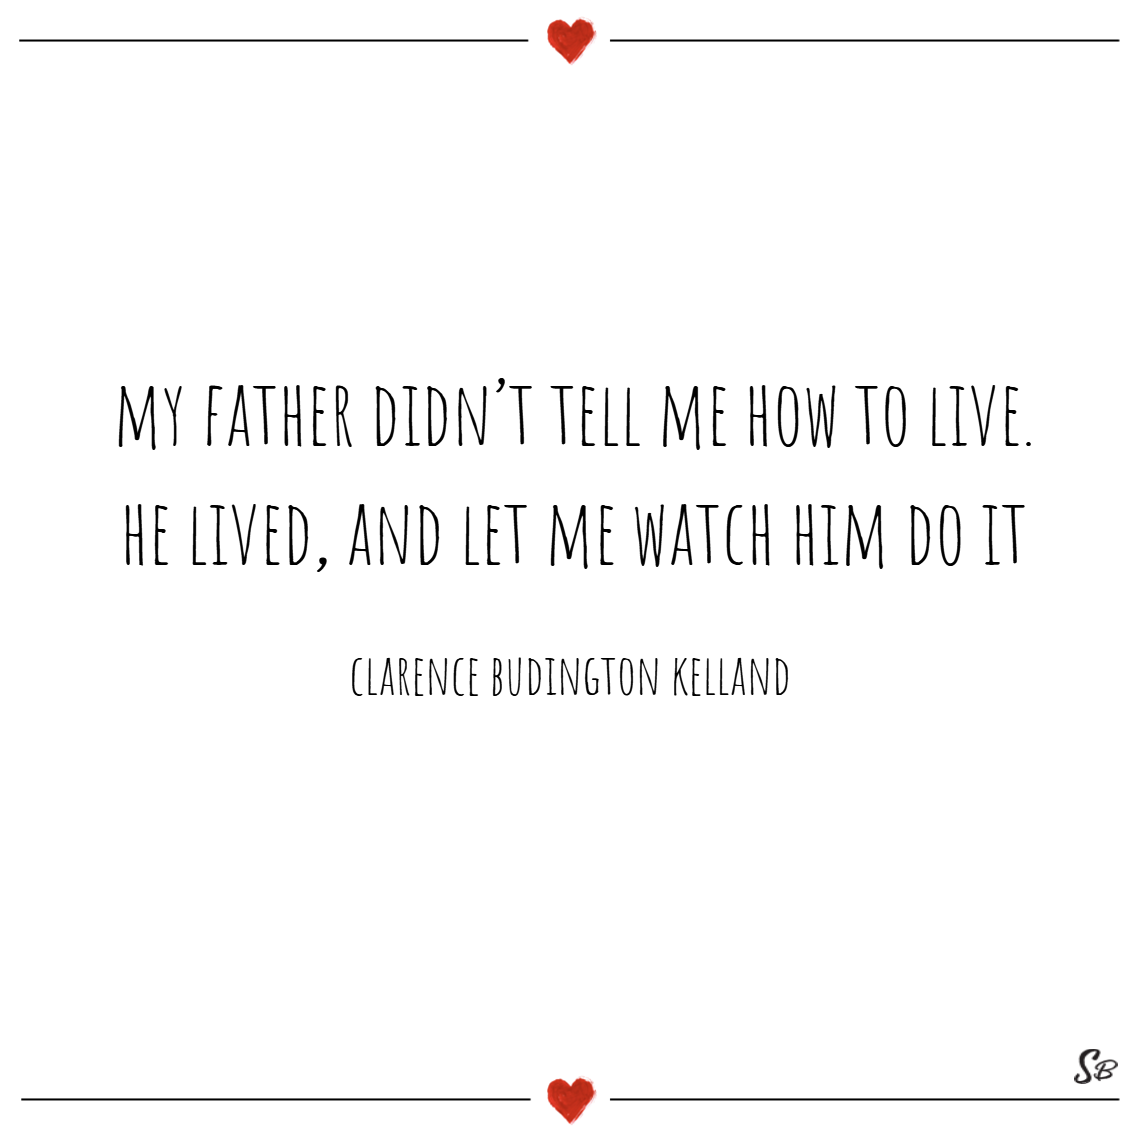 My father didn't tell me how to live; he lived, and let me watch him do it. – clarence budington kelland